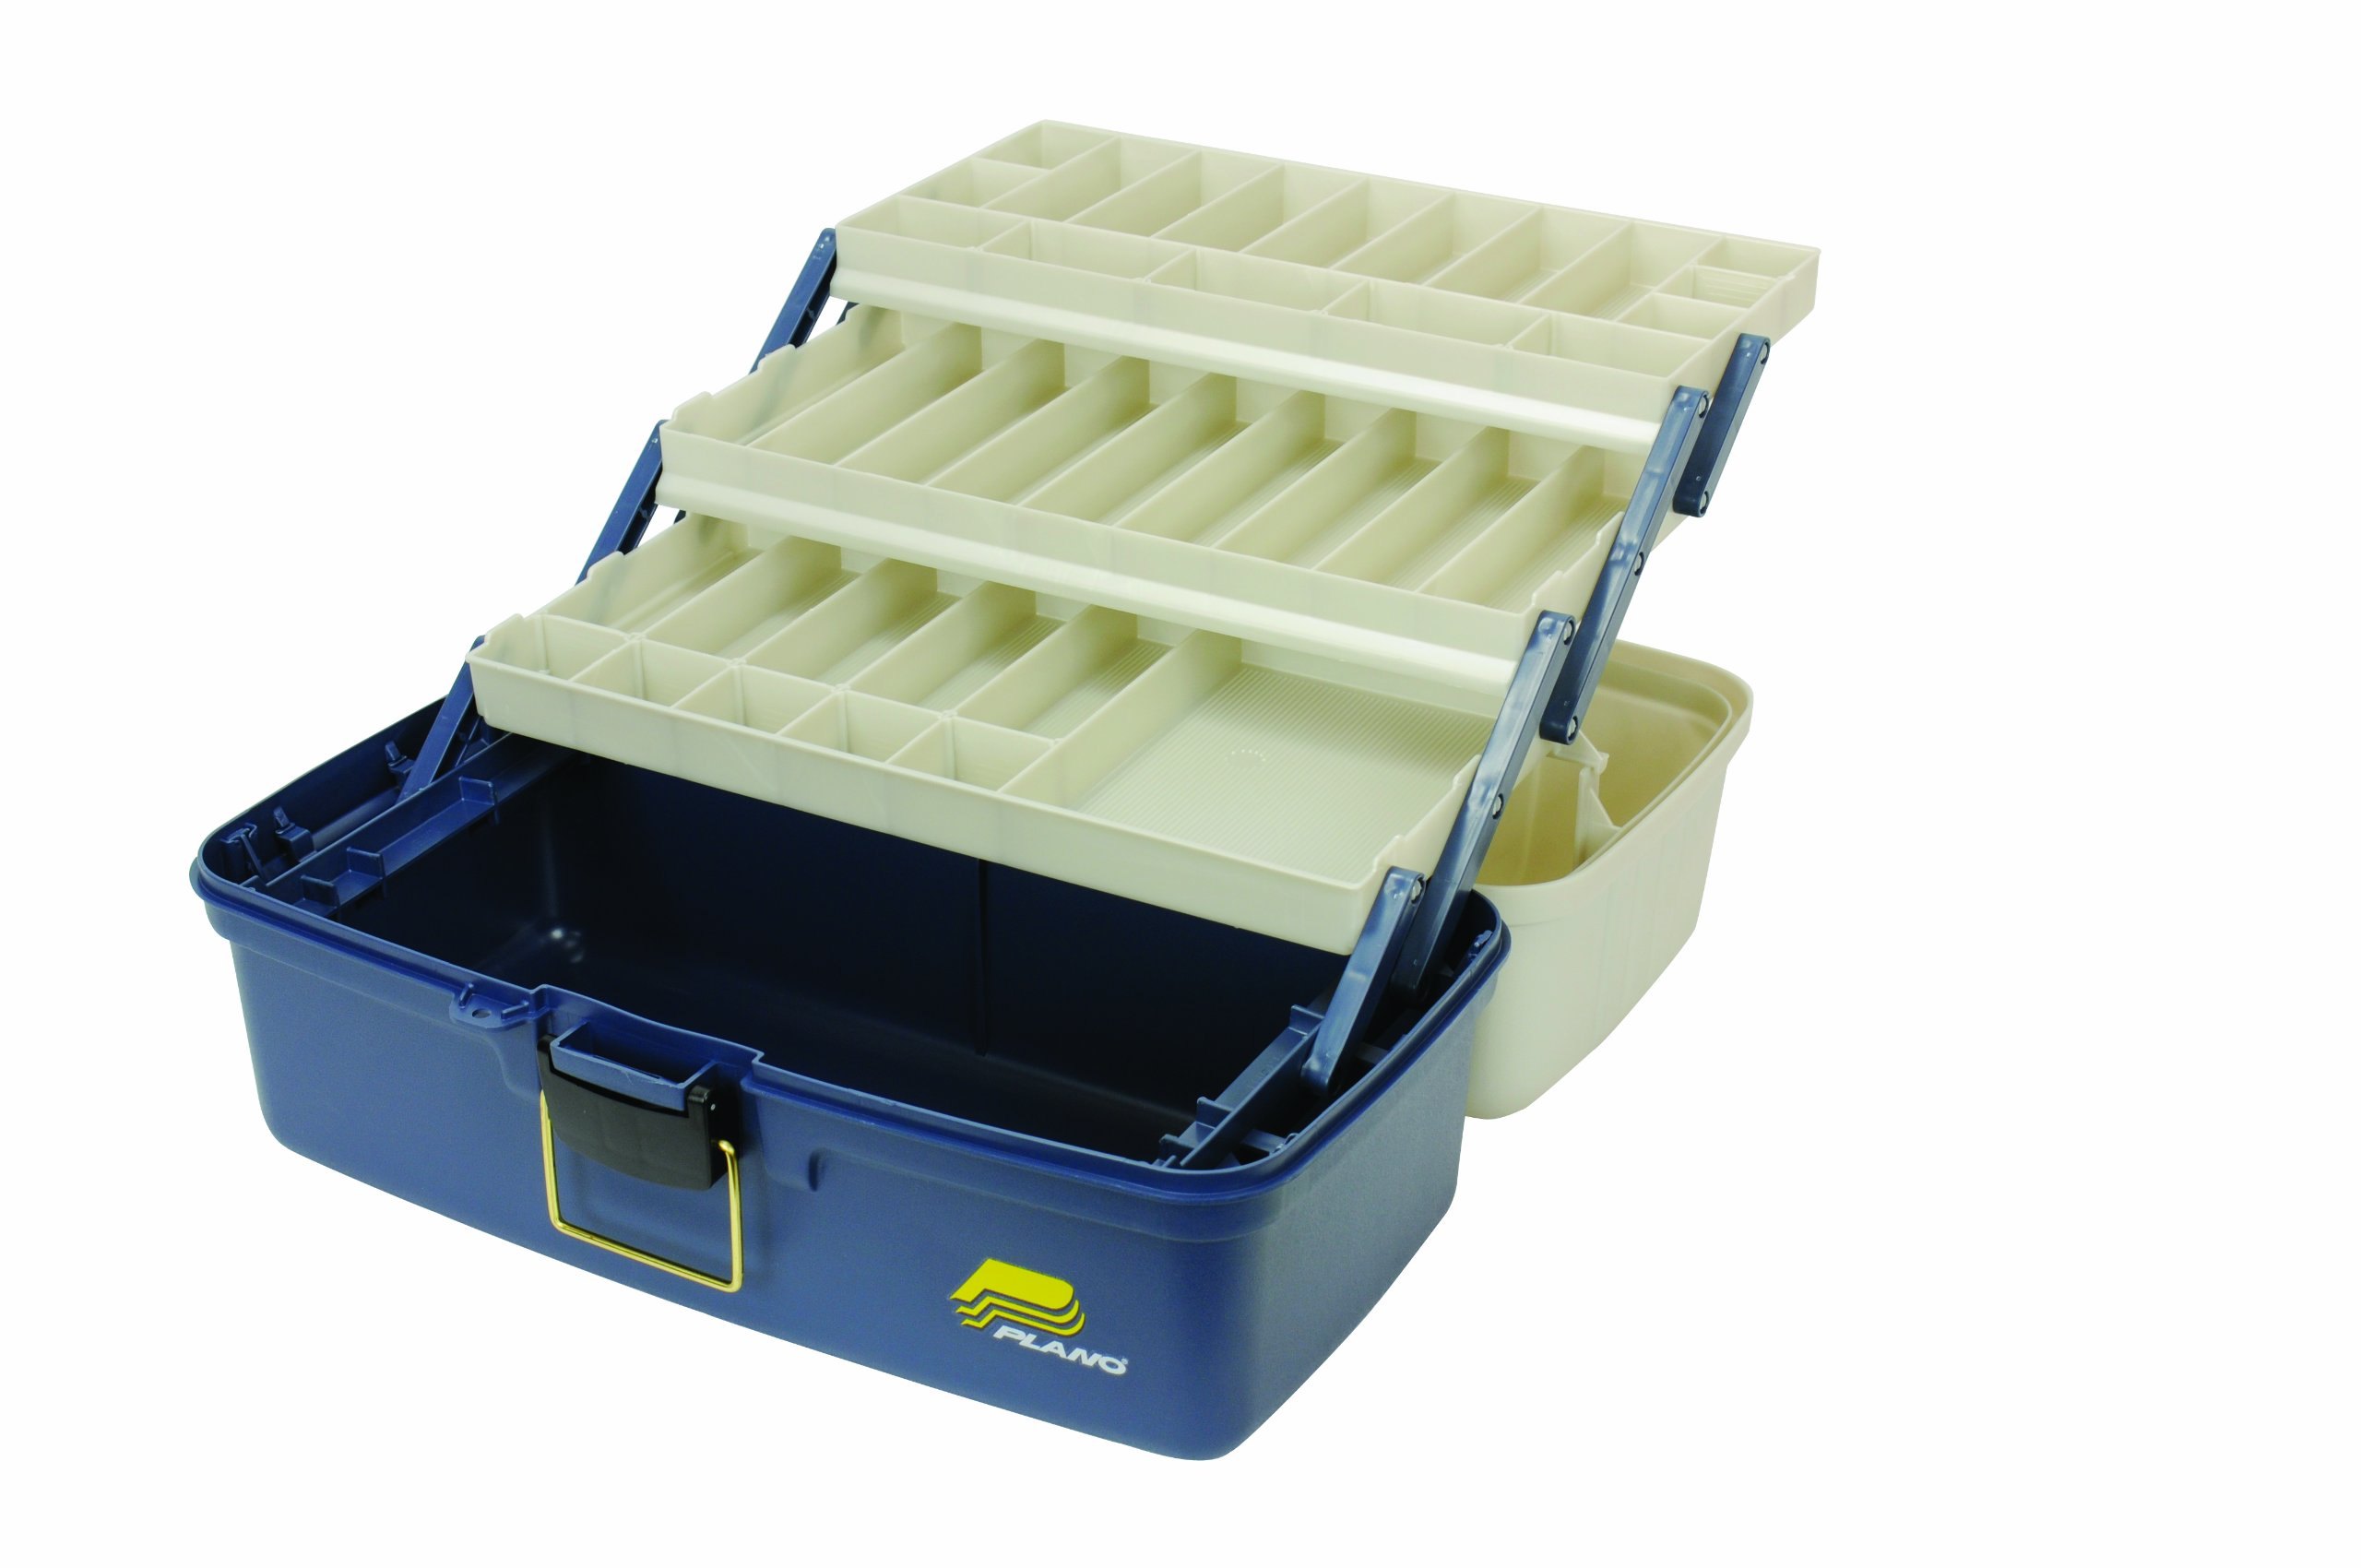 Plano xl 3 tray tackle box with large bulk storage new ebay for Large tackle boxes for fishing